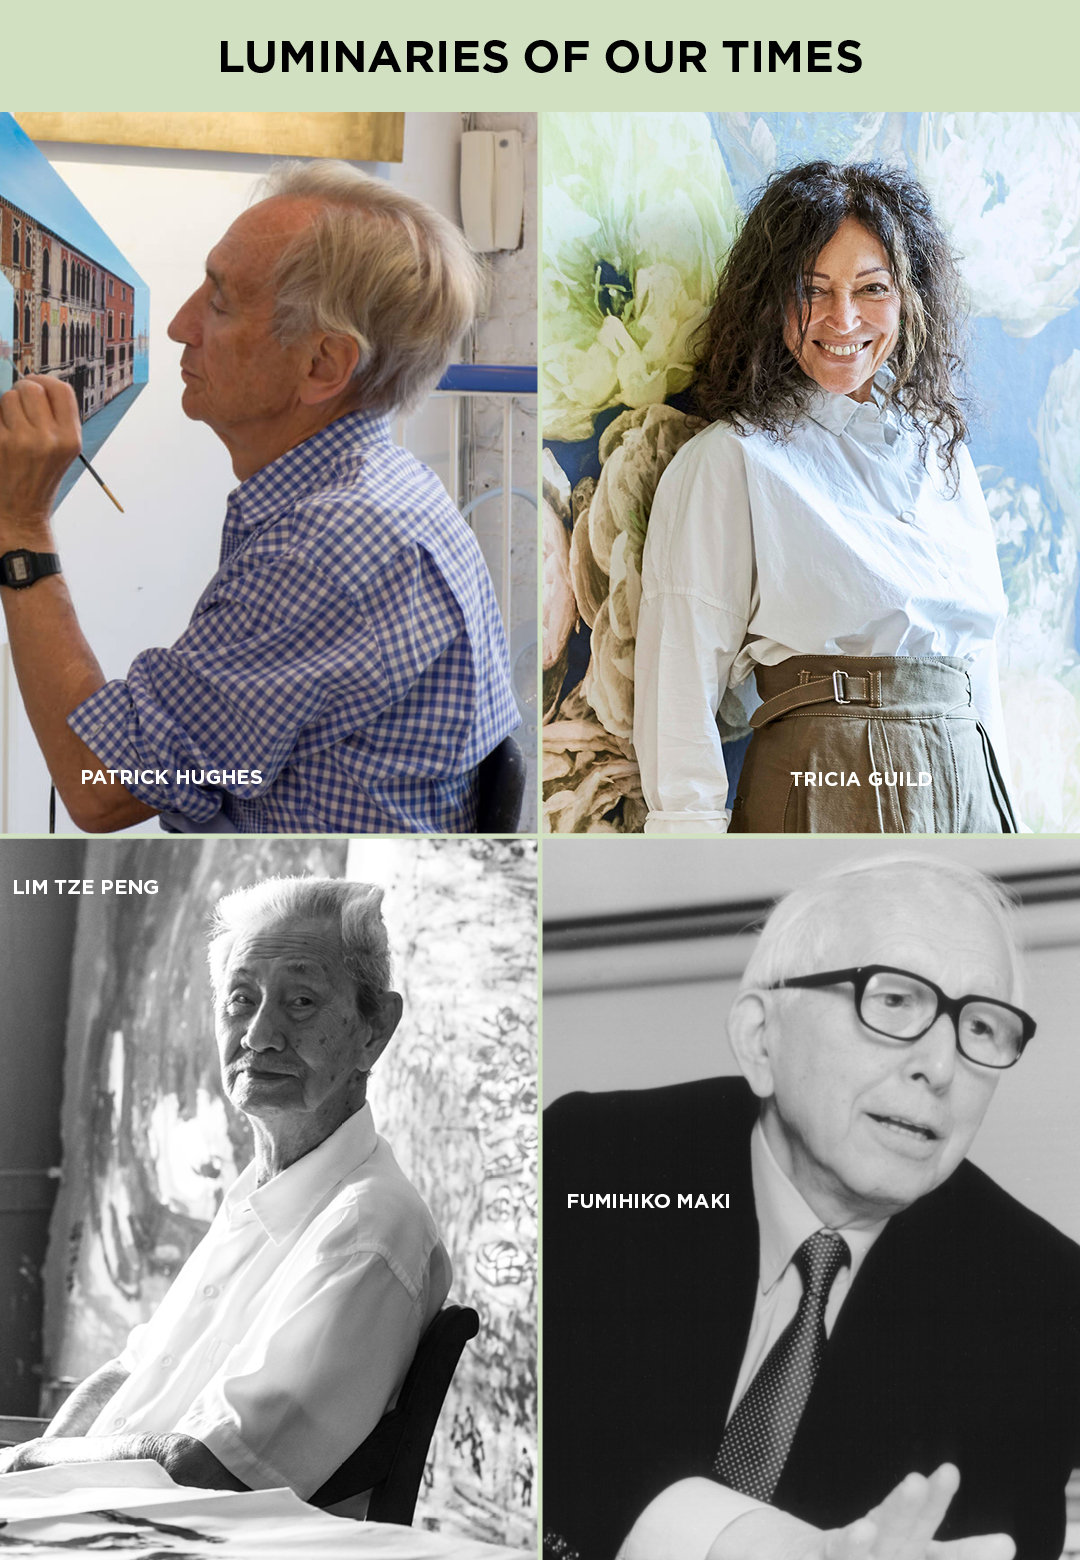 The luminaries of our times – from top left: Patrick Hughes, Tricia Guild, Fumihoko Maki and Lim Tze Peng | Luminaries of our times | STIRworld